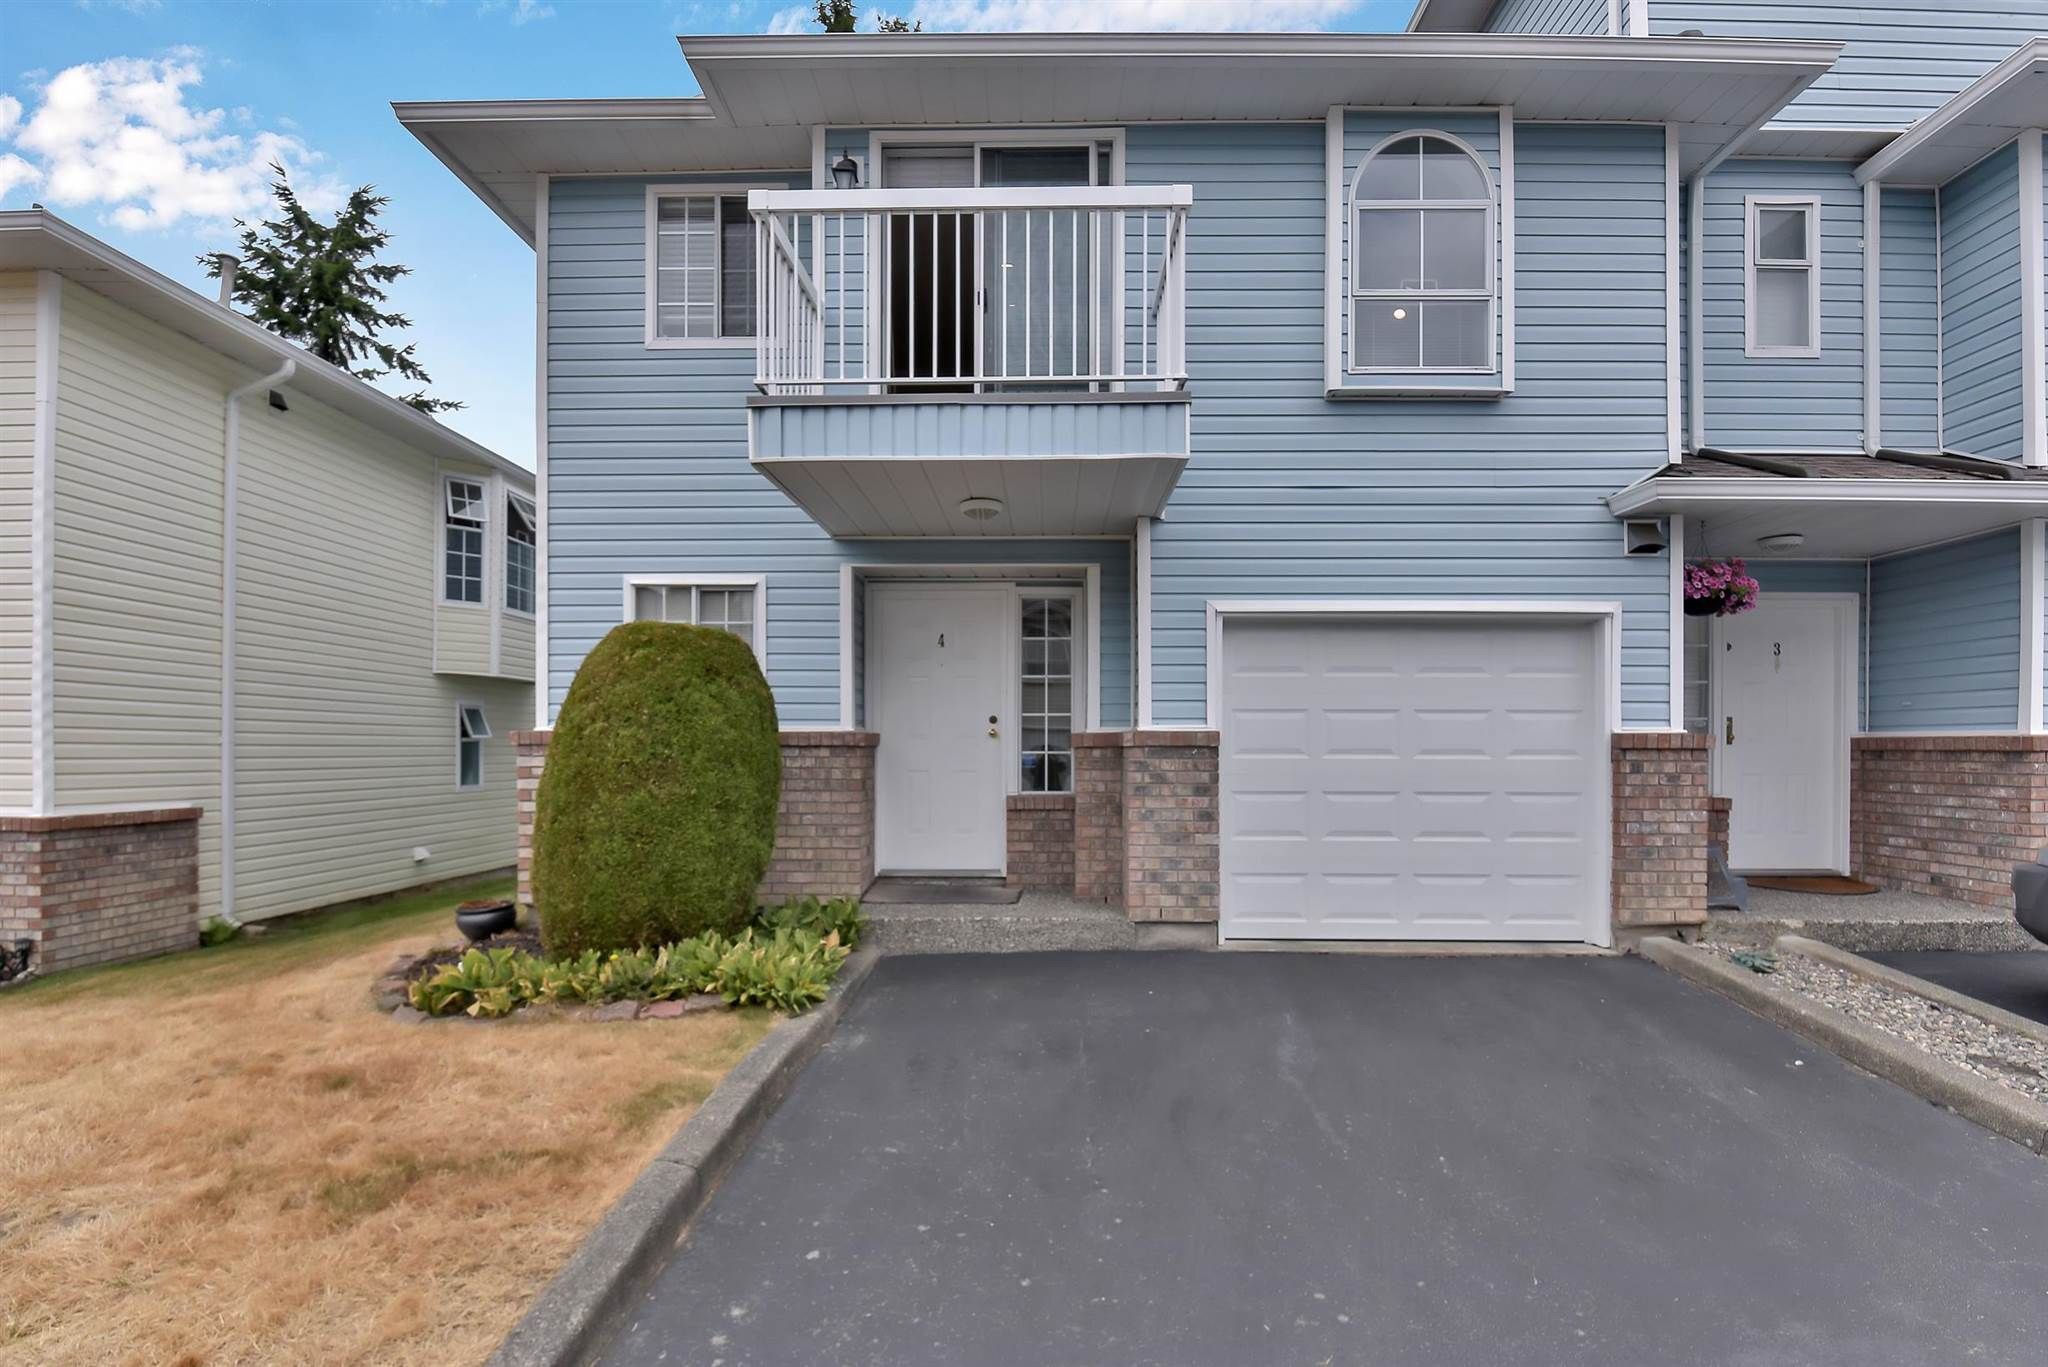 Main Photo: 4 13976 72 Avenue in Surrey: East Newton Townhouse for sale : MLS®# R2602579